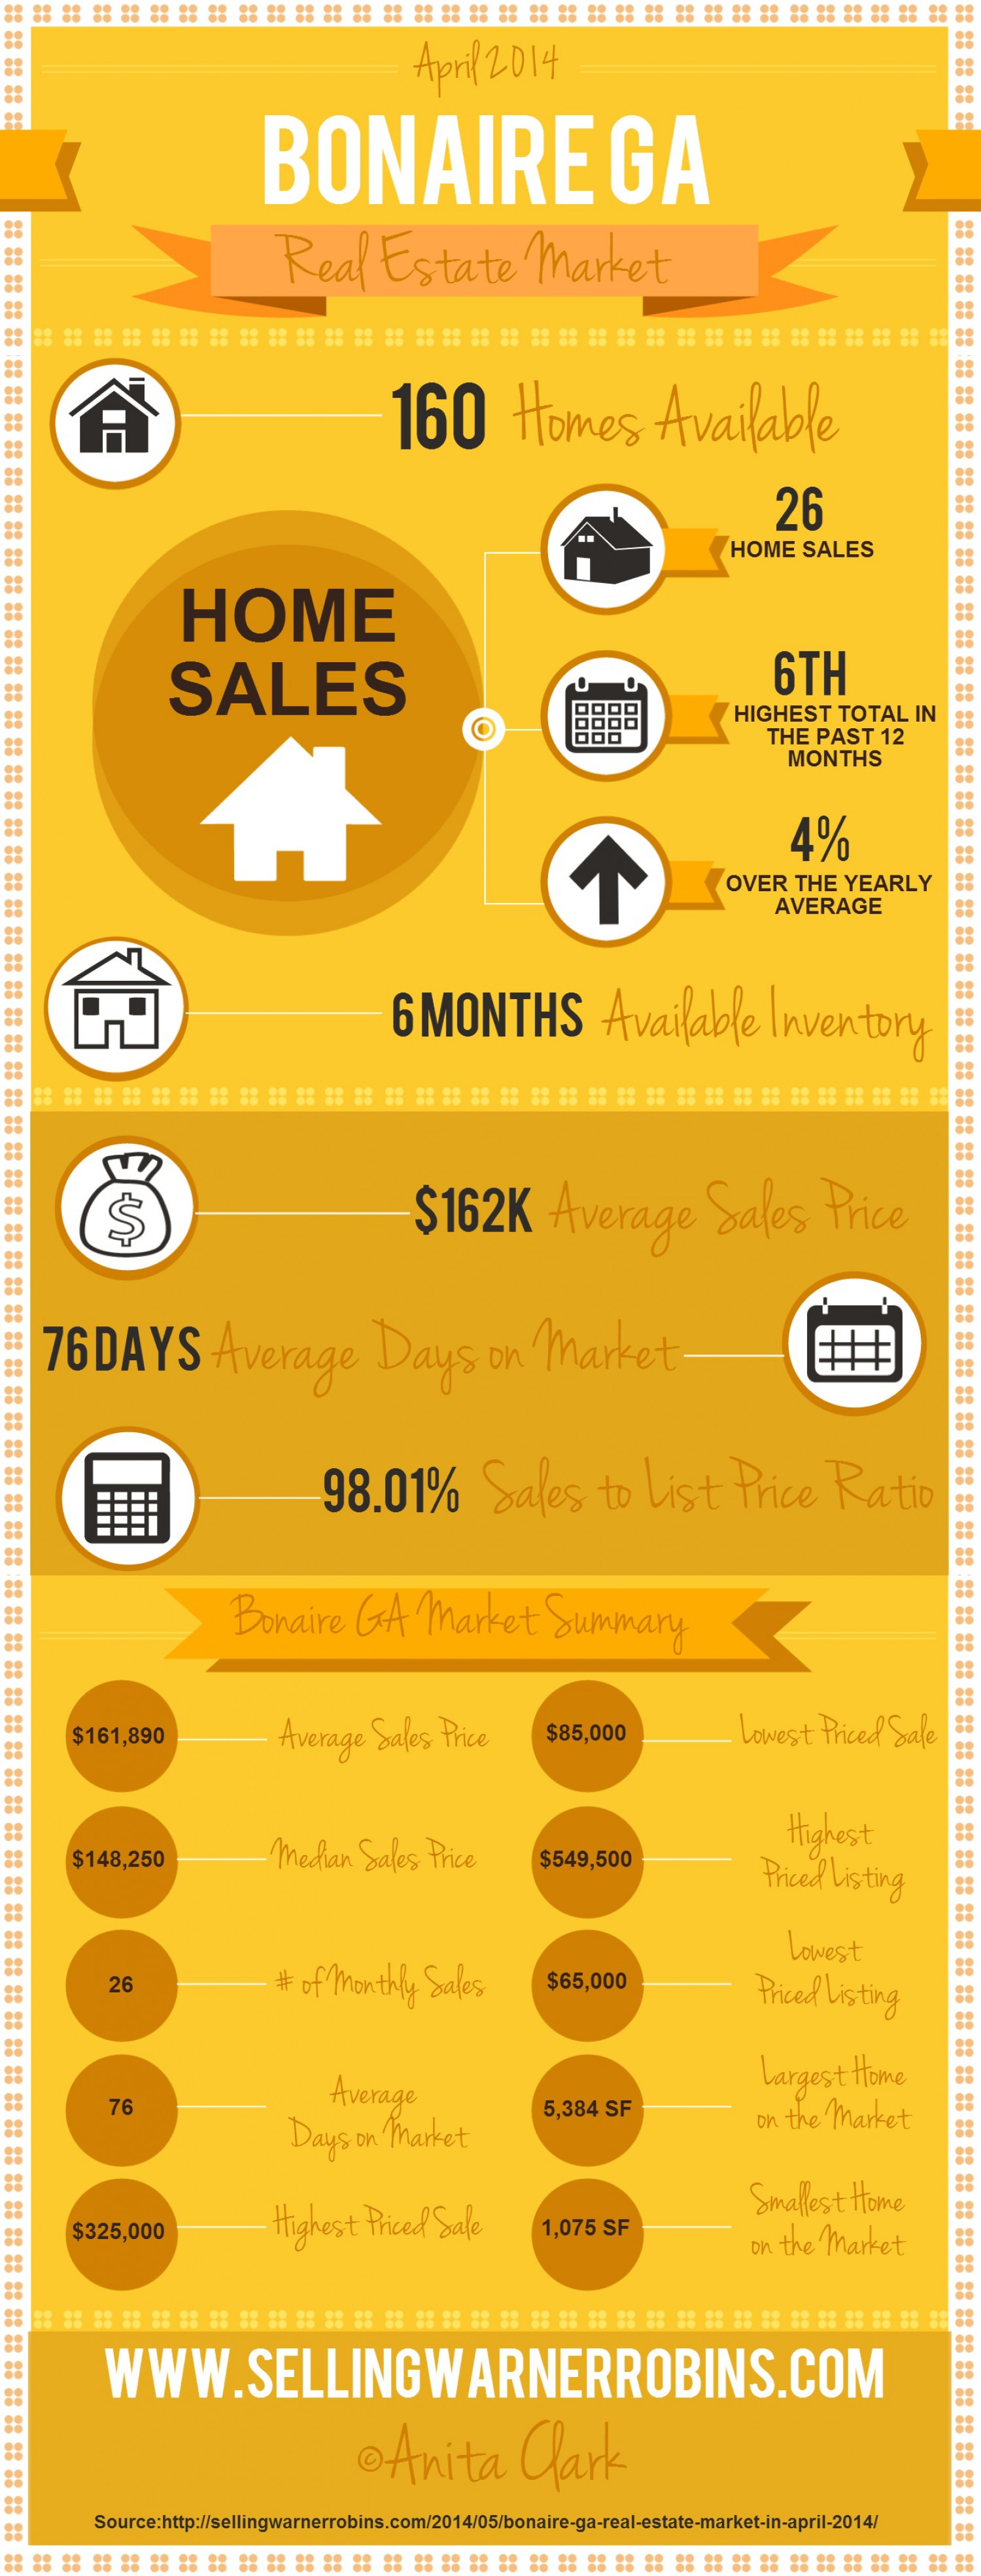 Bonaire GA Real Estate Market in April 2014 Infographic